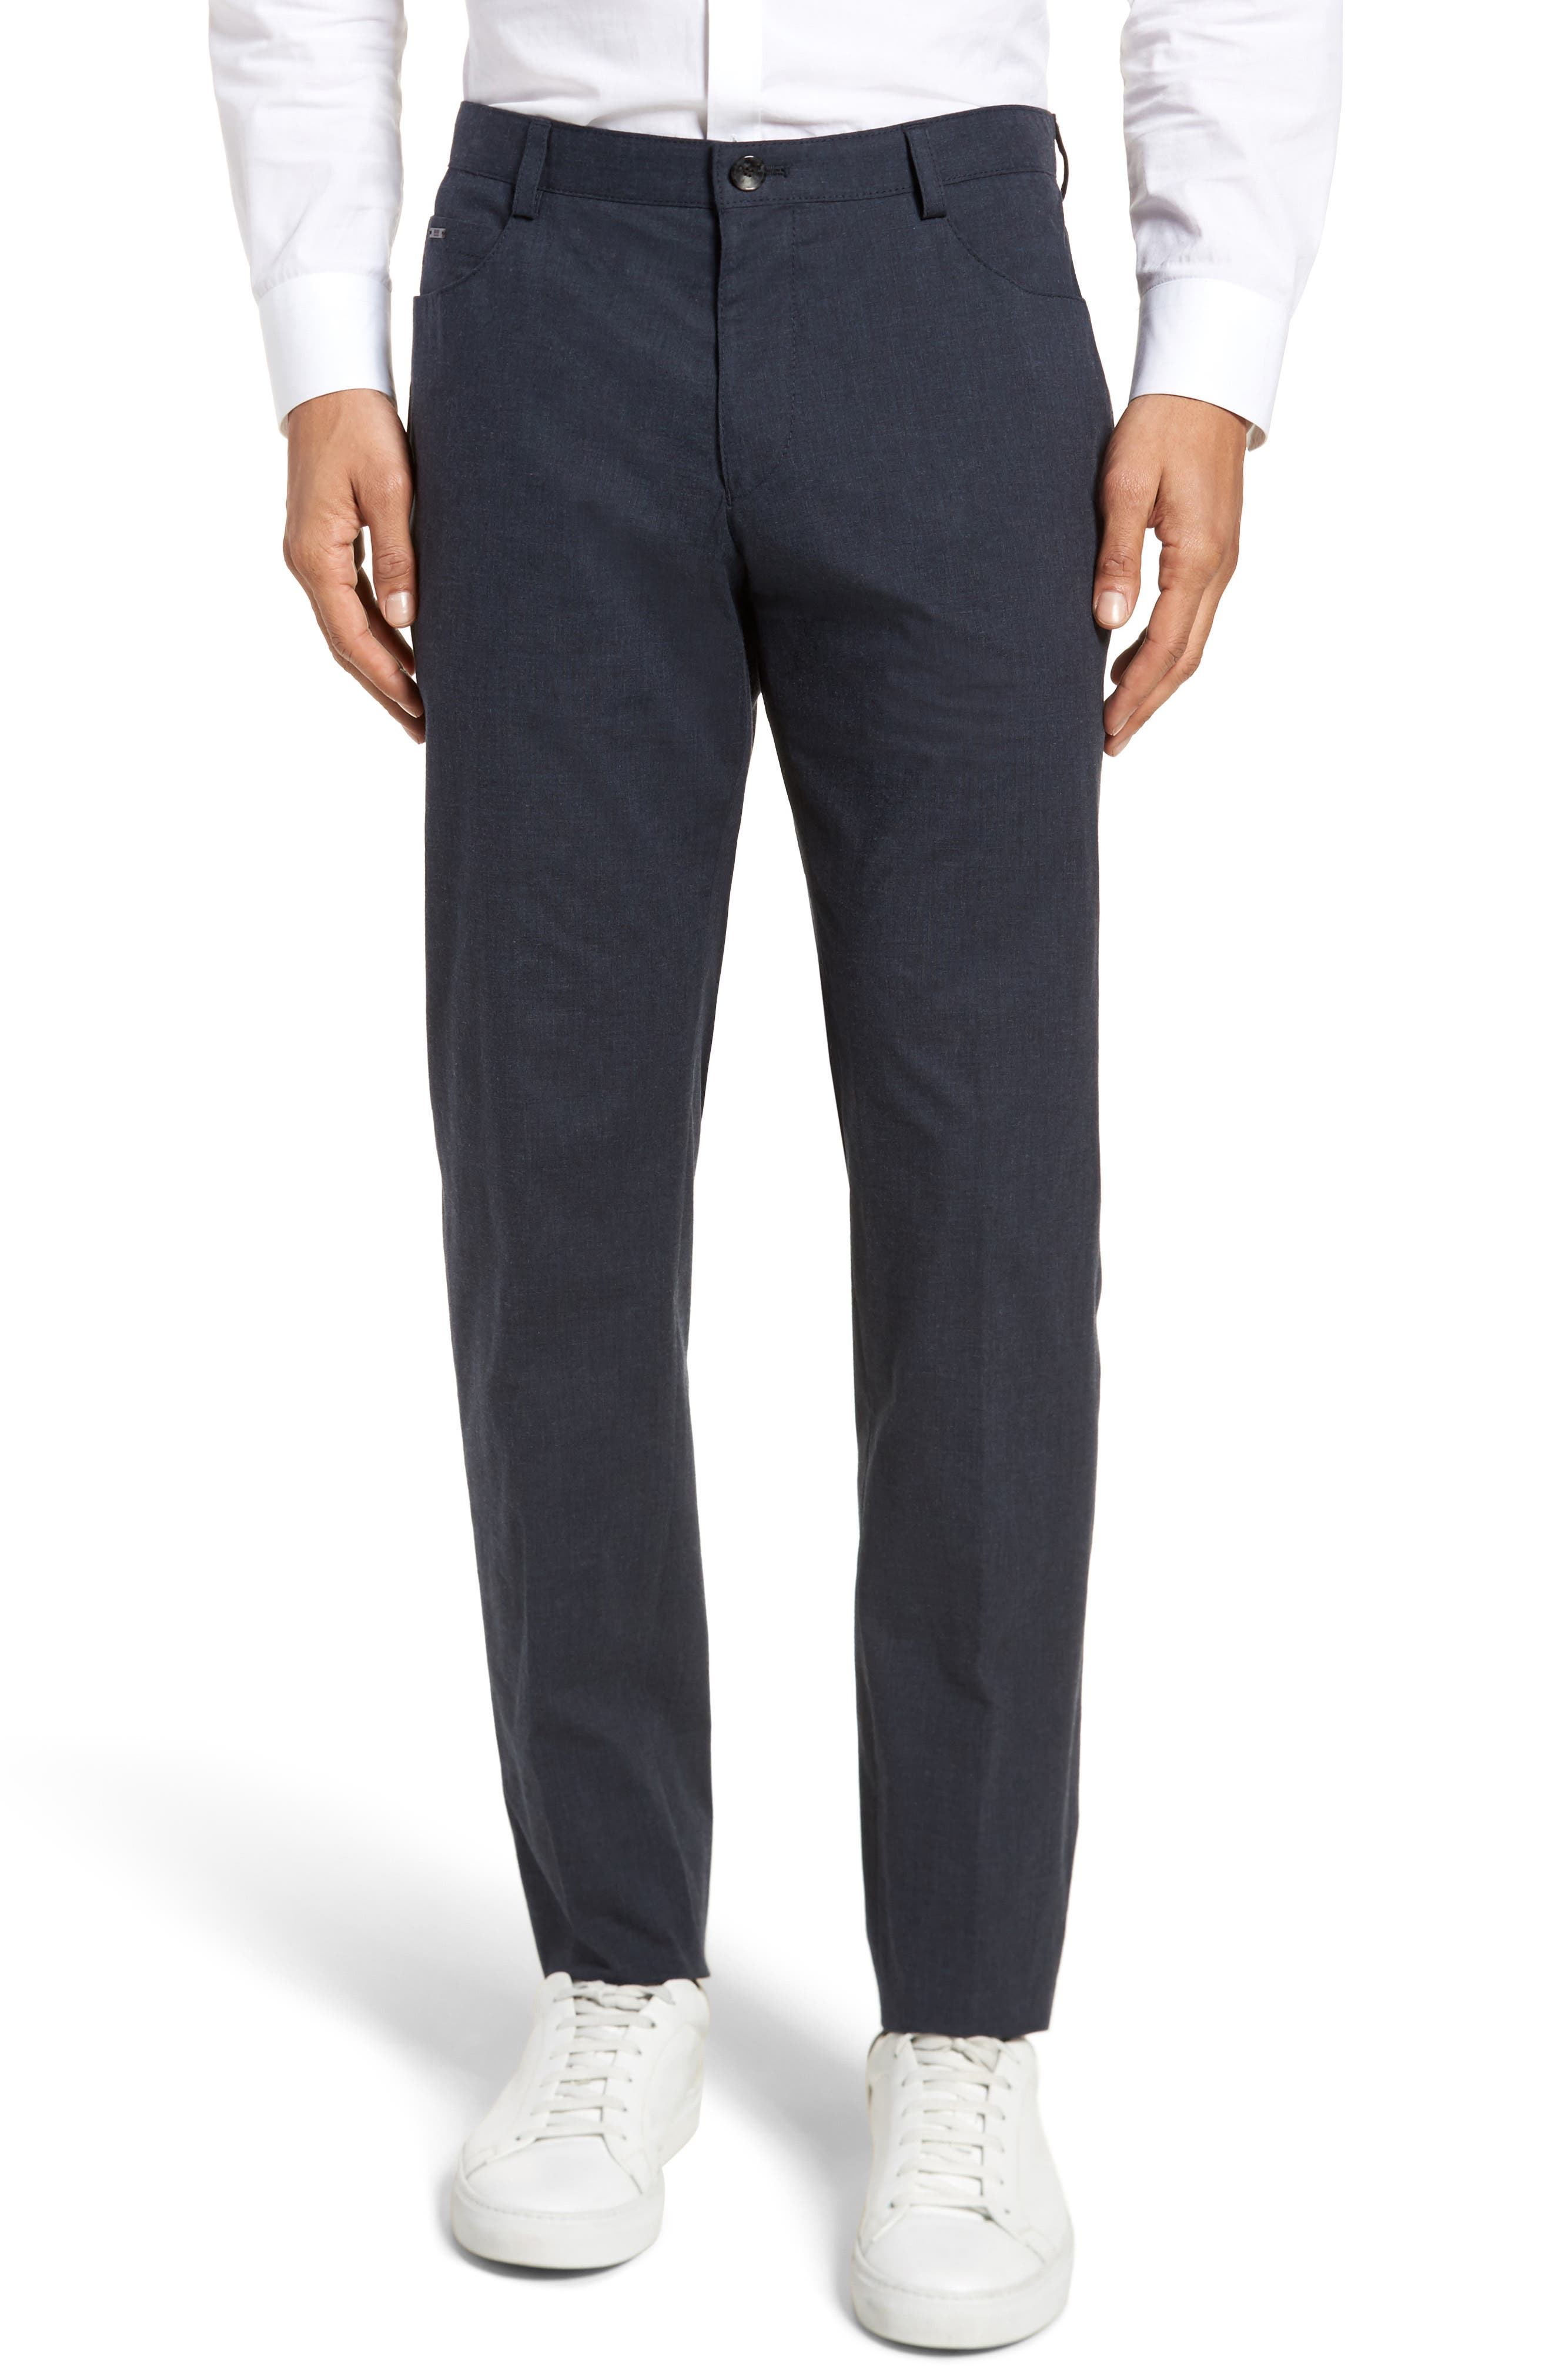 Gaetano Flat Front Stretch Solid Cotton Trousers,                             Main thumbnail 1, color,                             Dark Grey